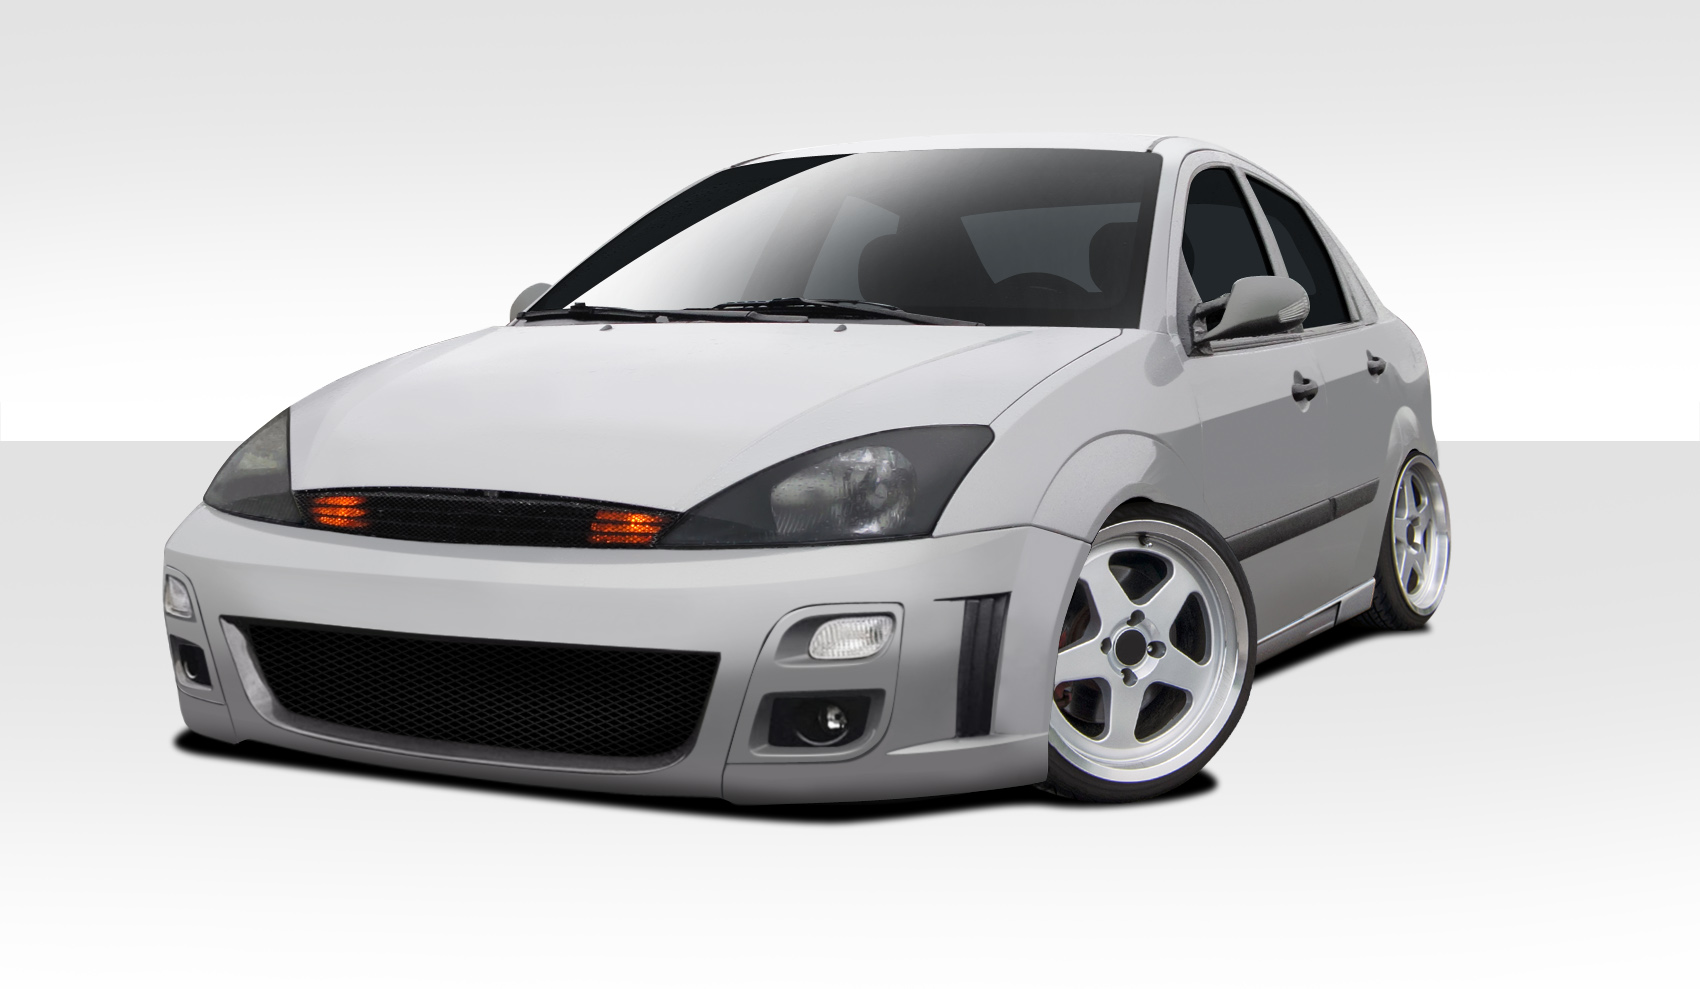 body kit bodykit for 2002 ford focus 4dr ford focus 4dr. Black Bedroom Furniture Sets. Home Design Ideas